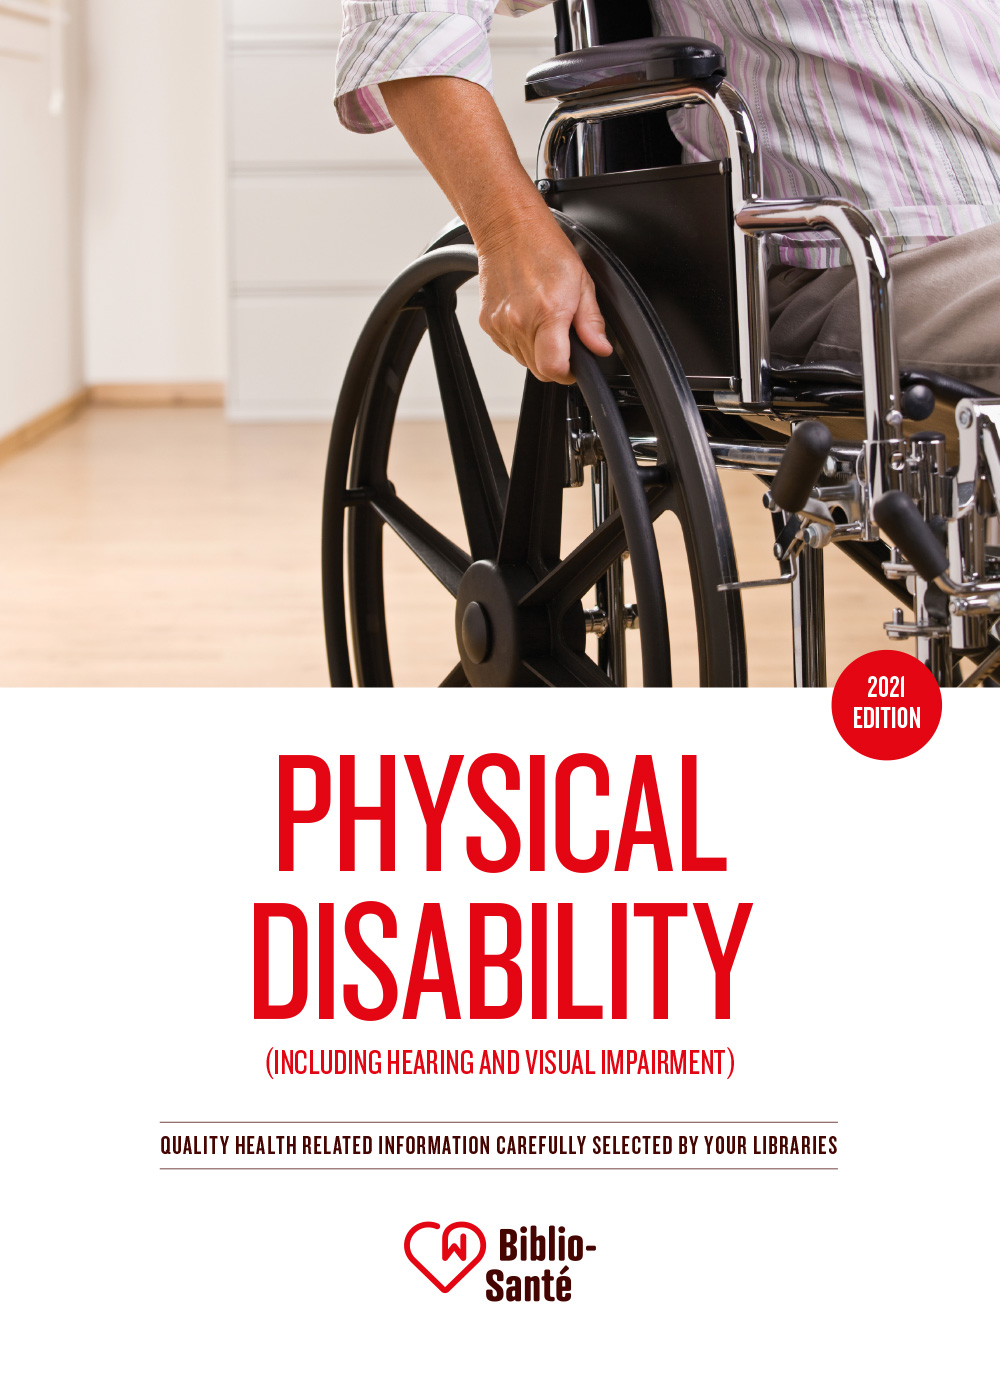 Physical disability booklet